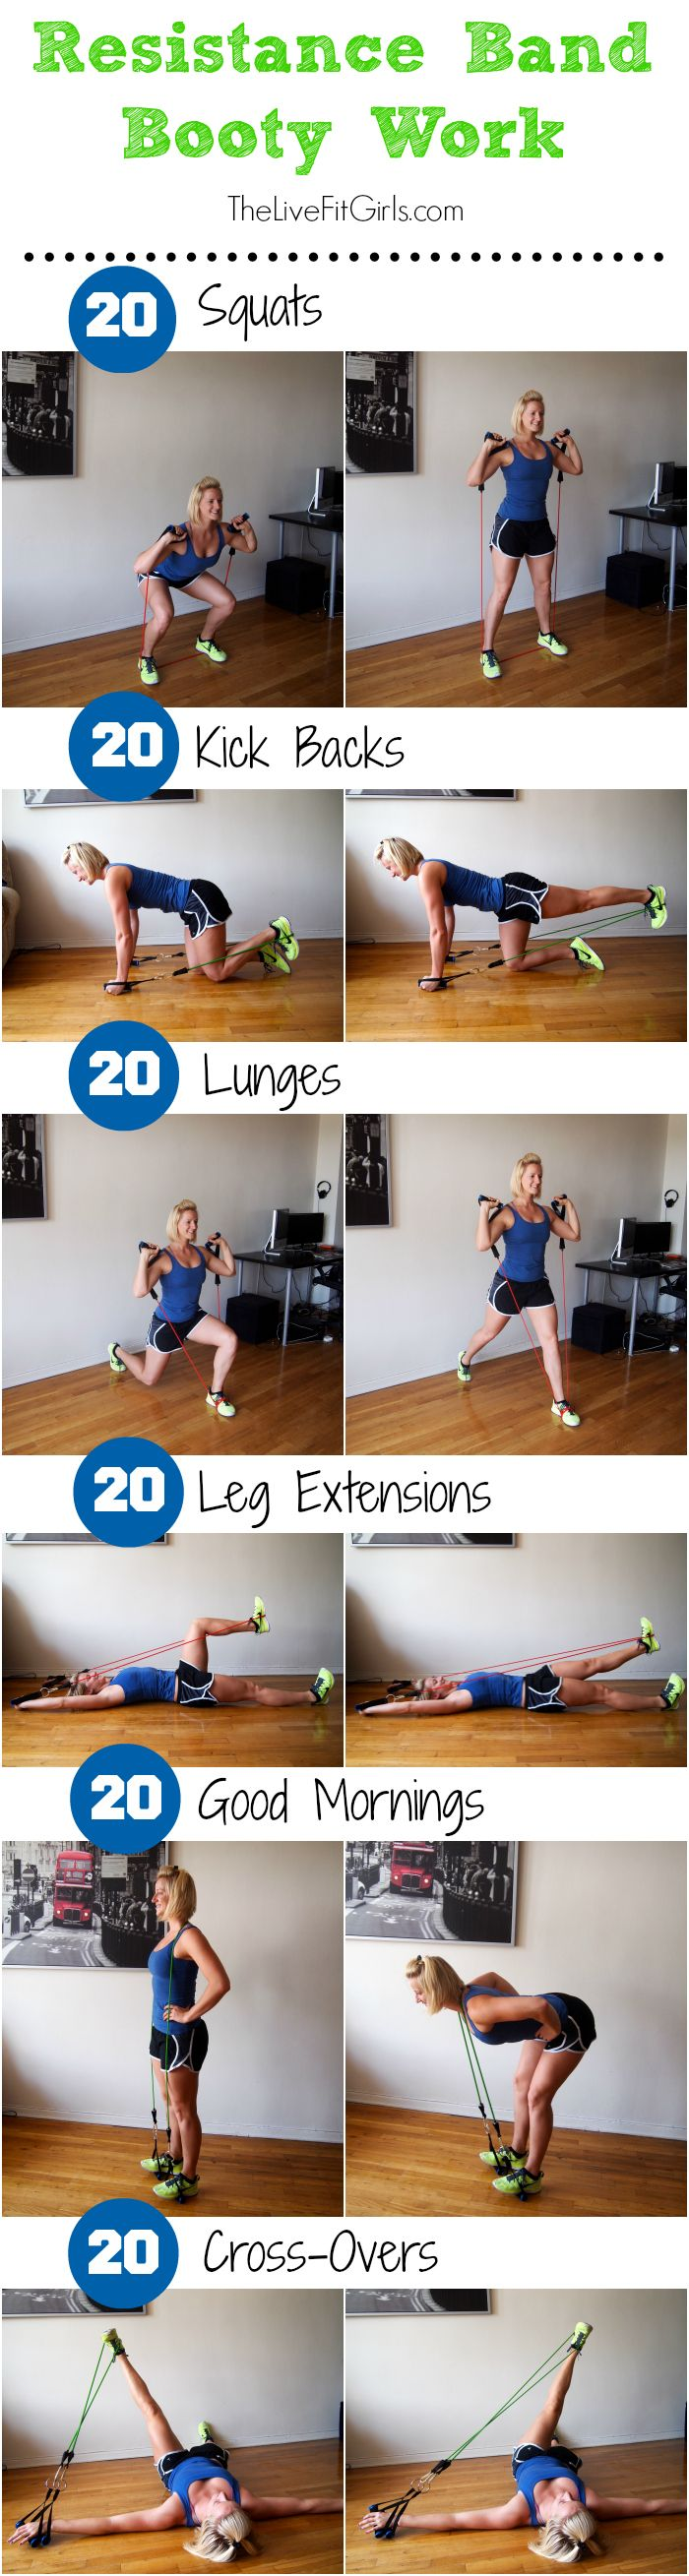 exercises pinterest resistance on best images bands exercise booty work glutes workouts for workout band abs